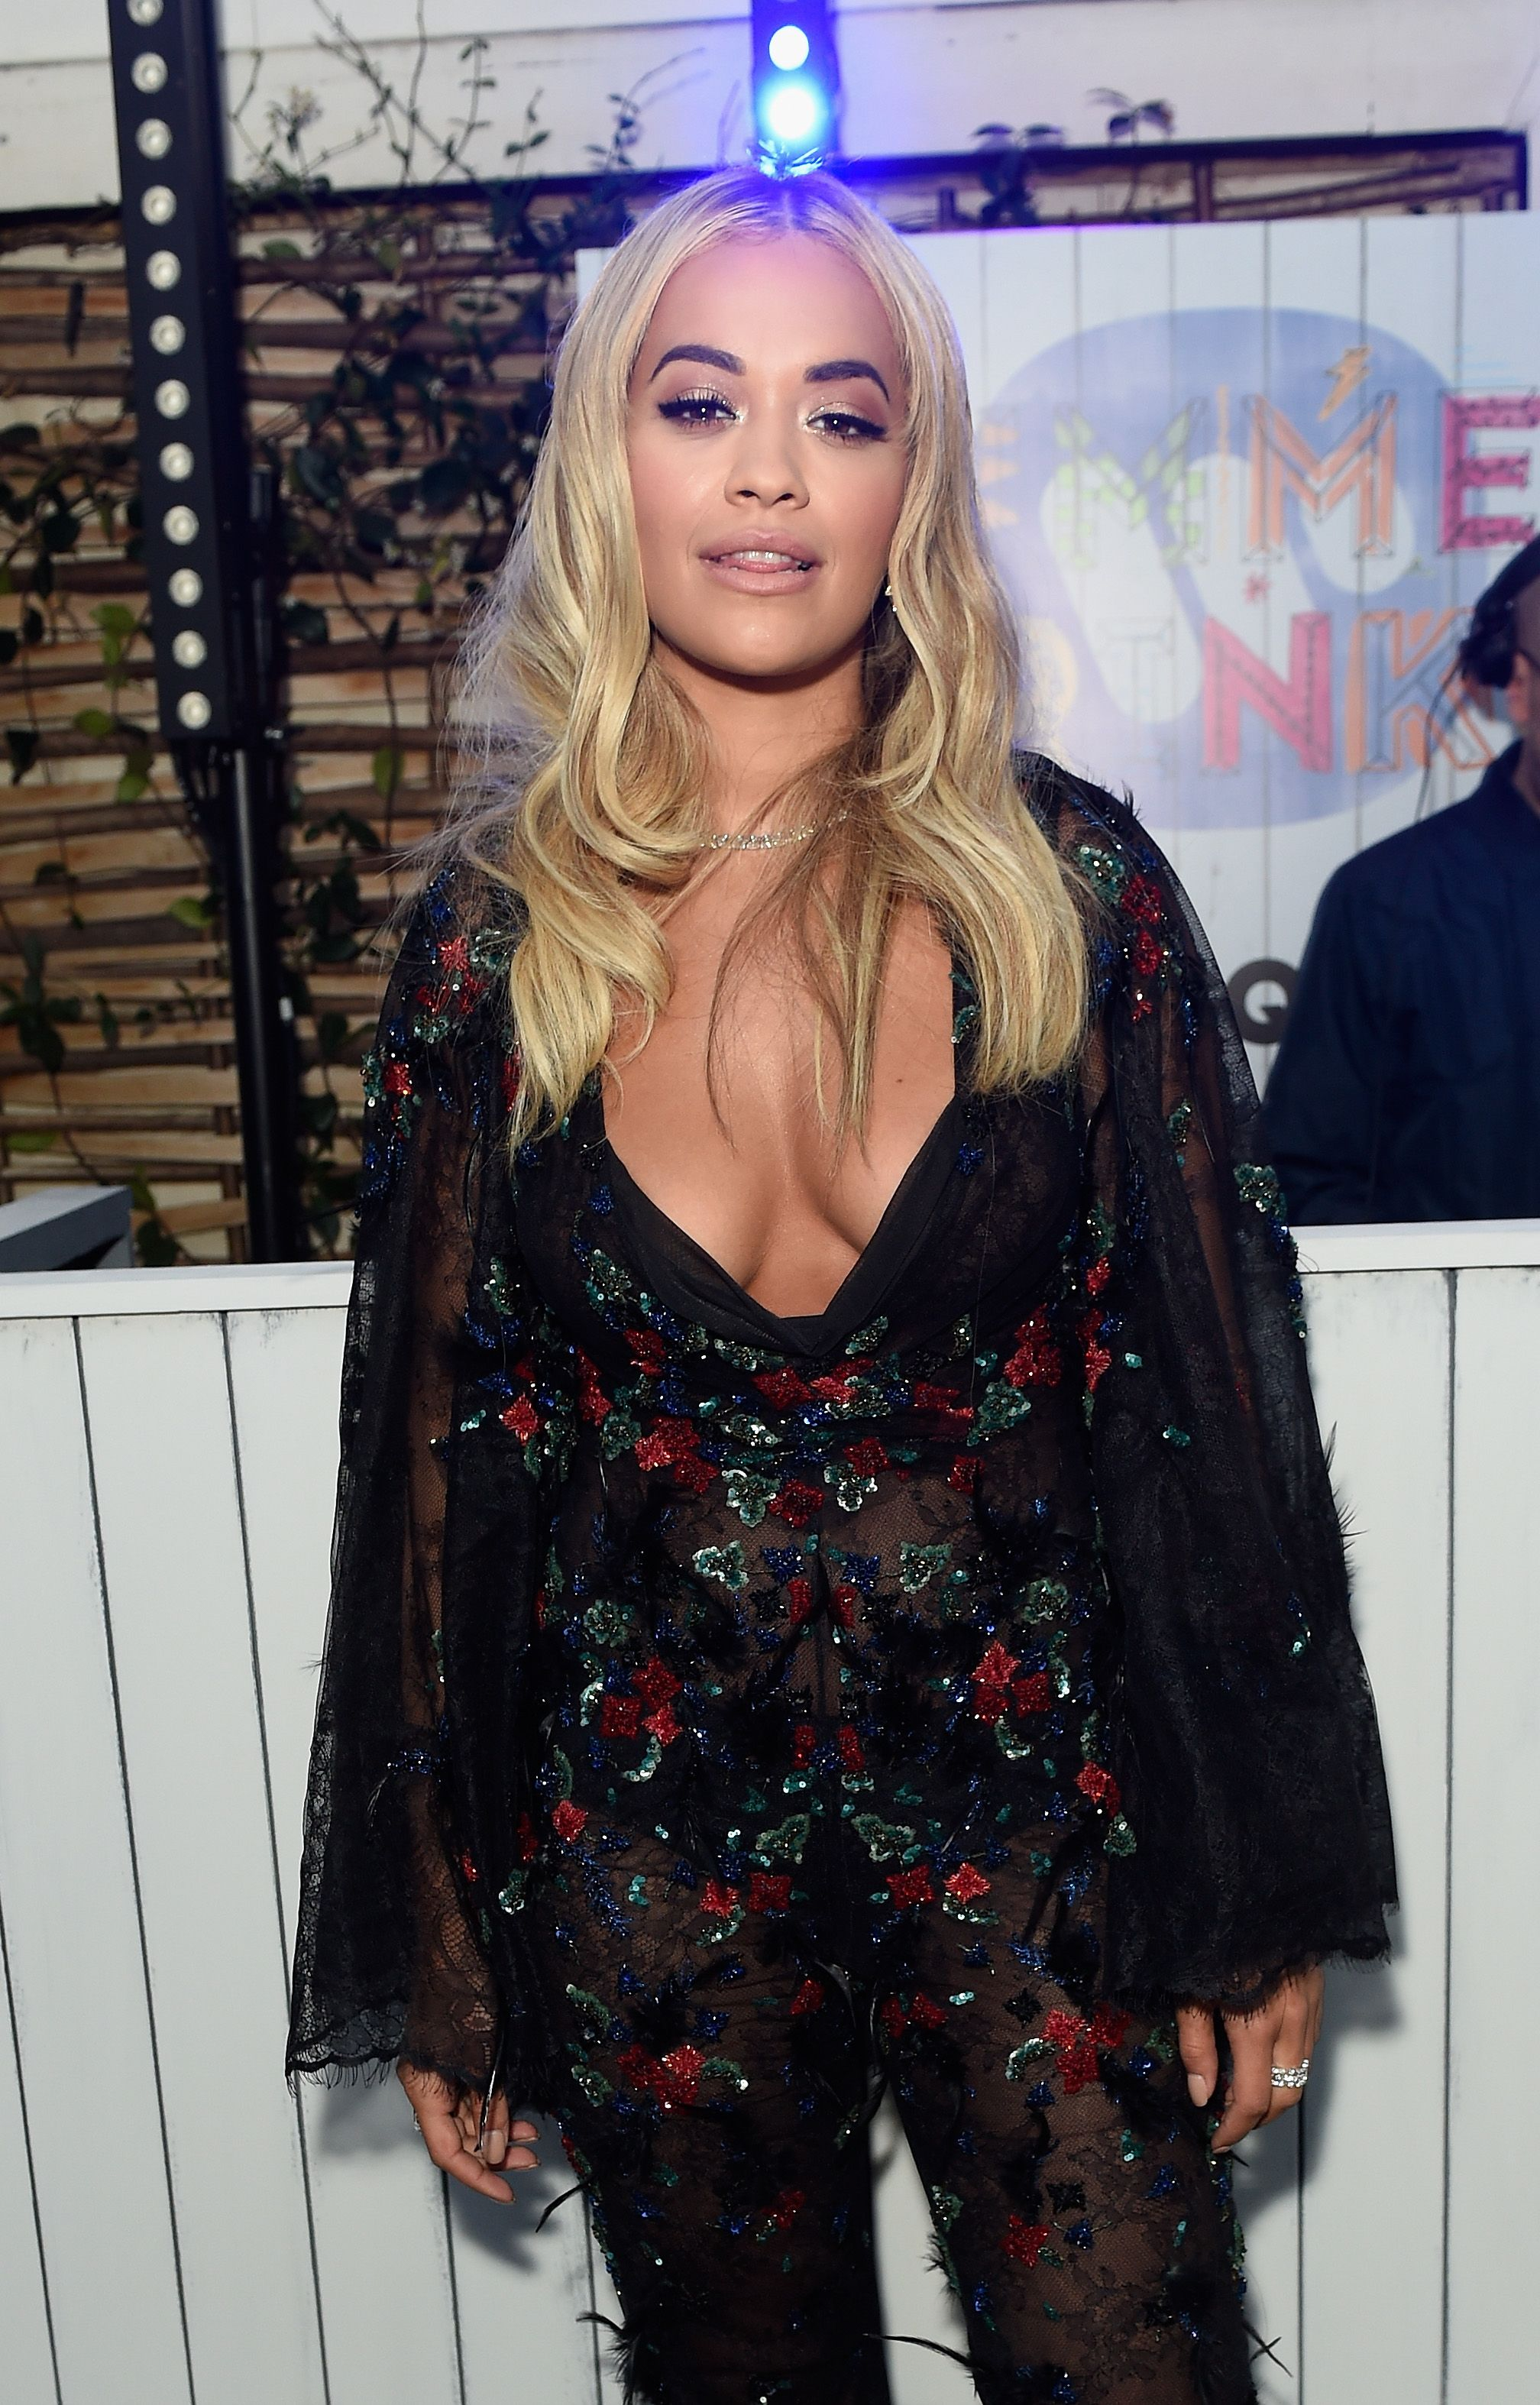 Rita-Ora-Cleavage-3 (1)